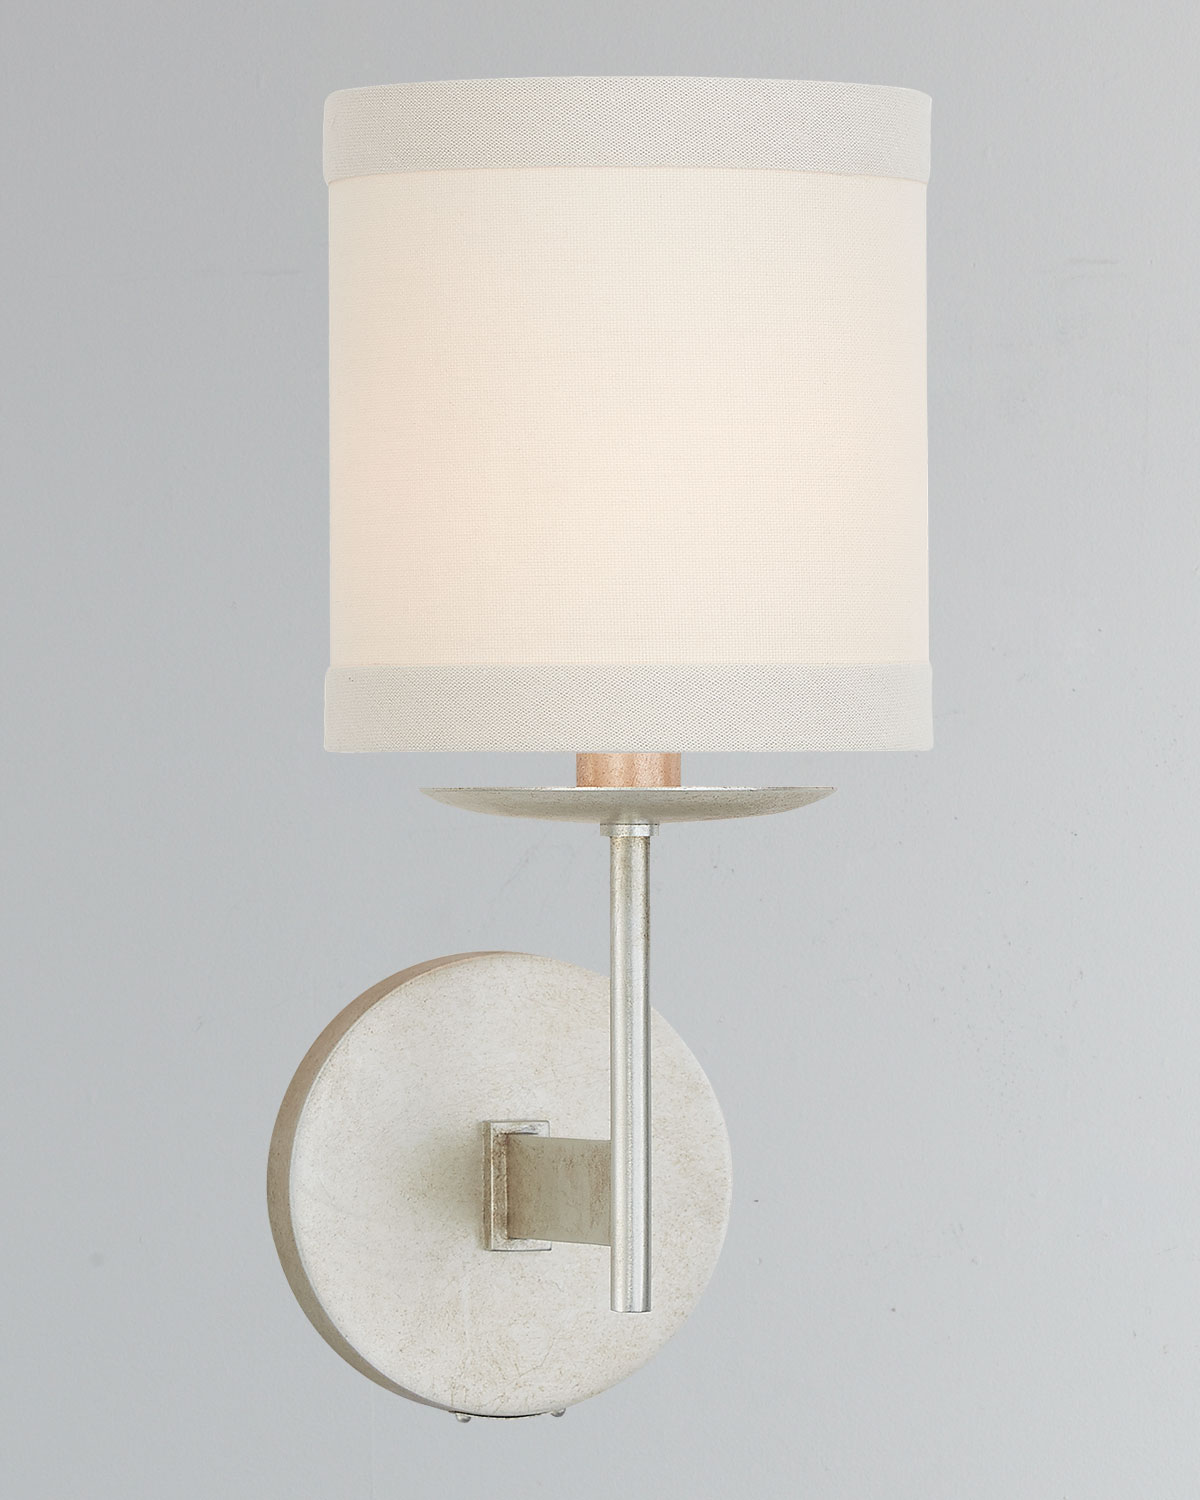 Kate Spade WALKER SMALL SCONCE